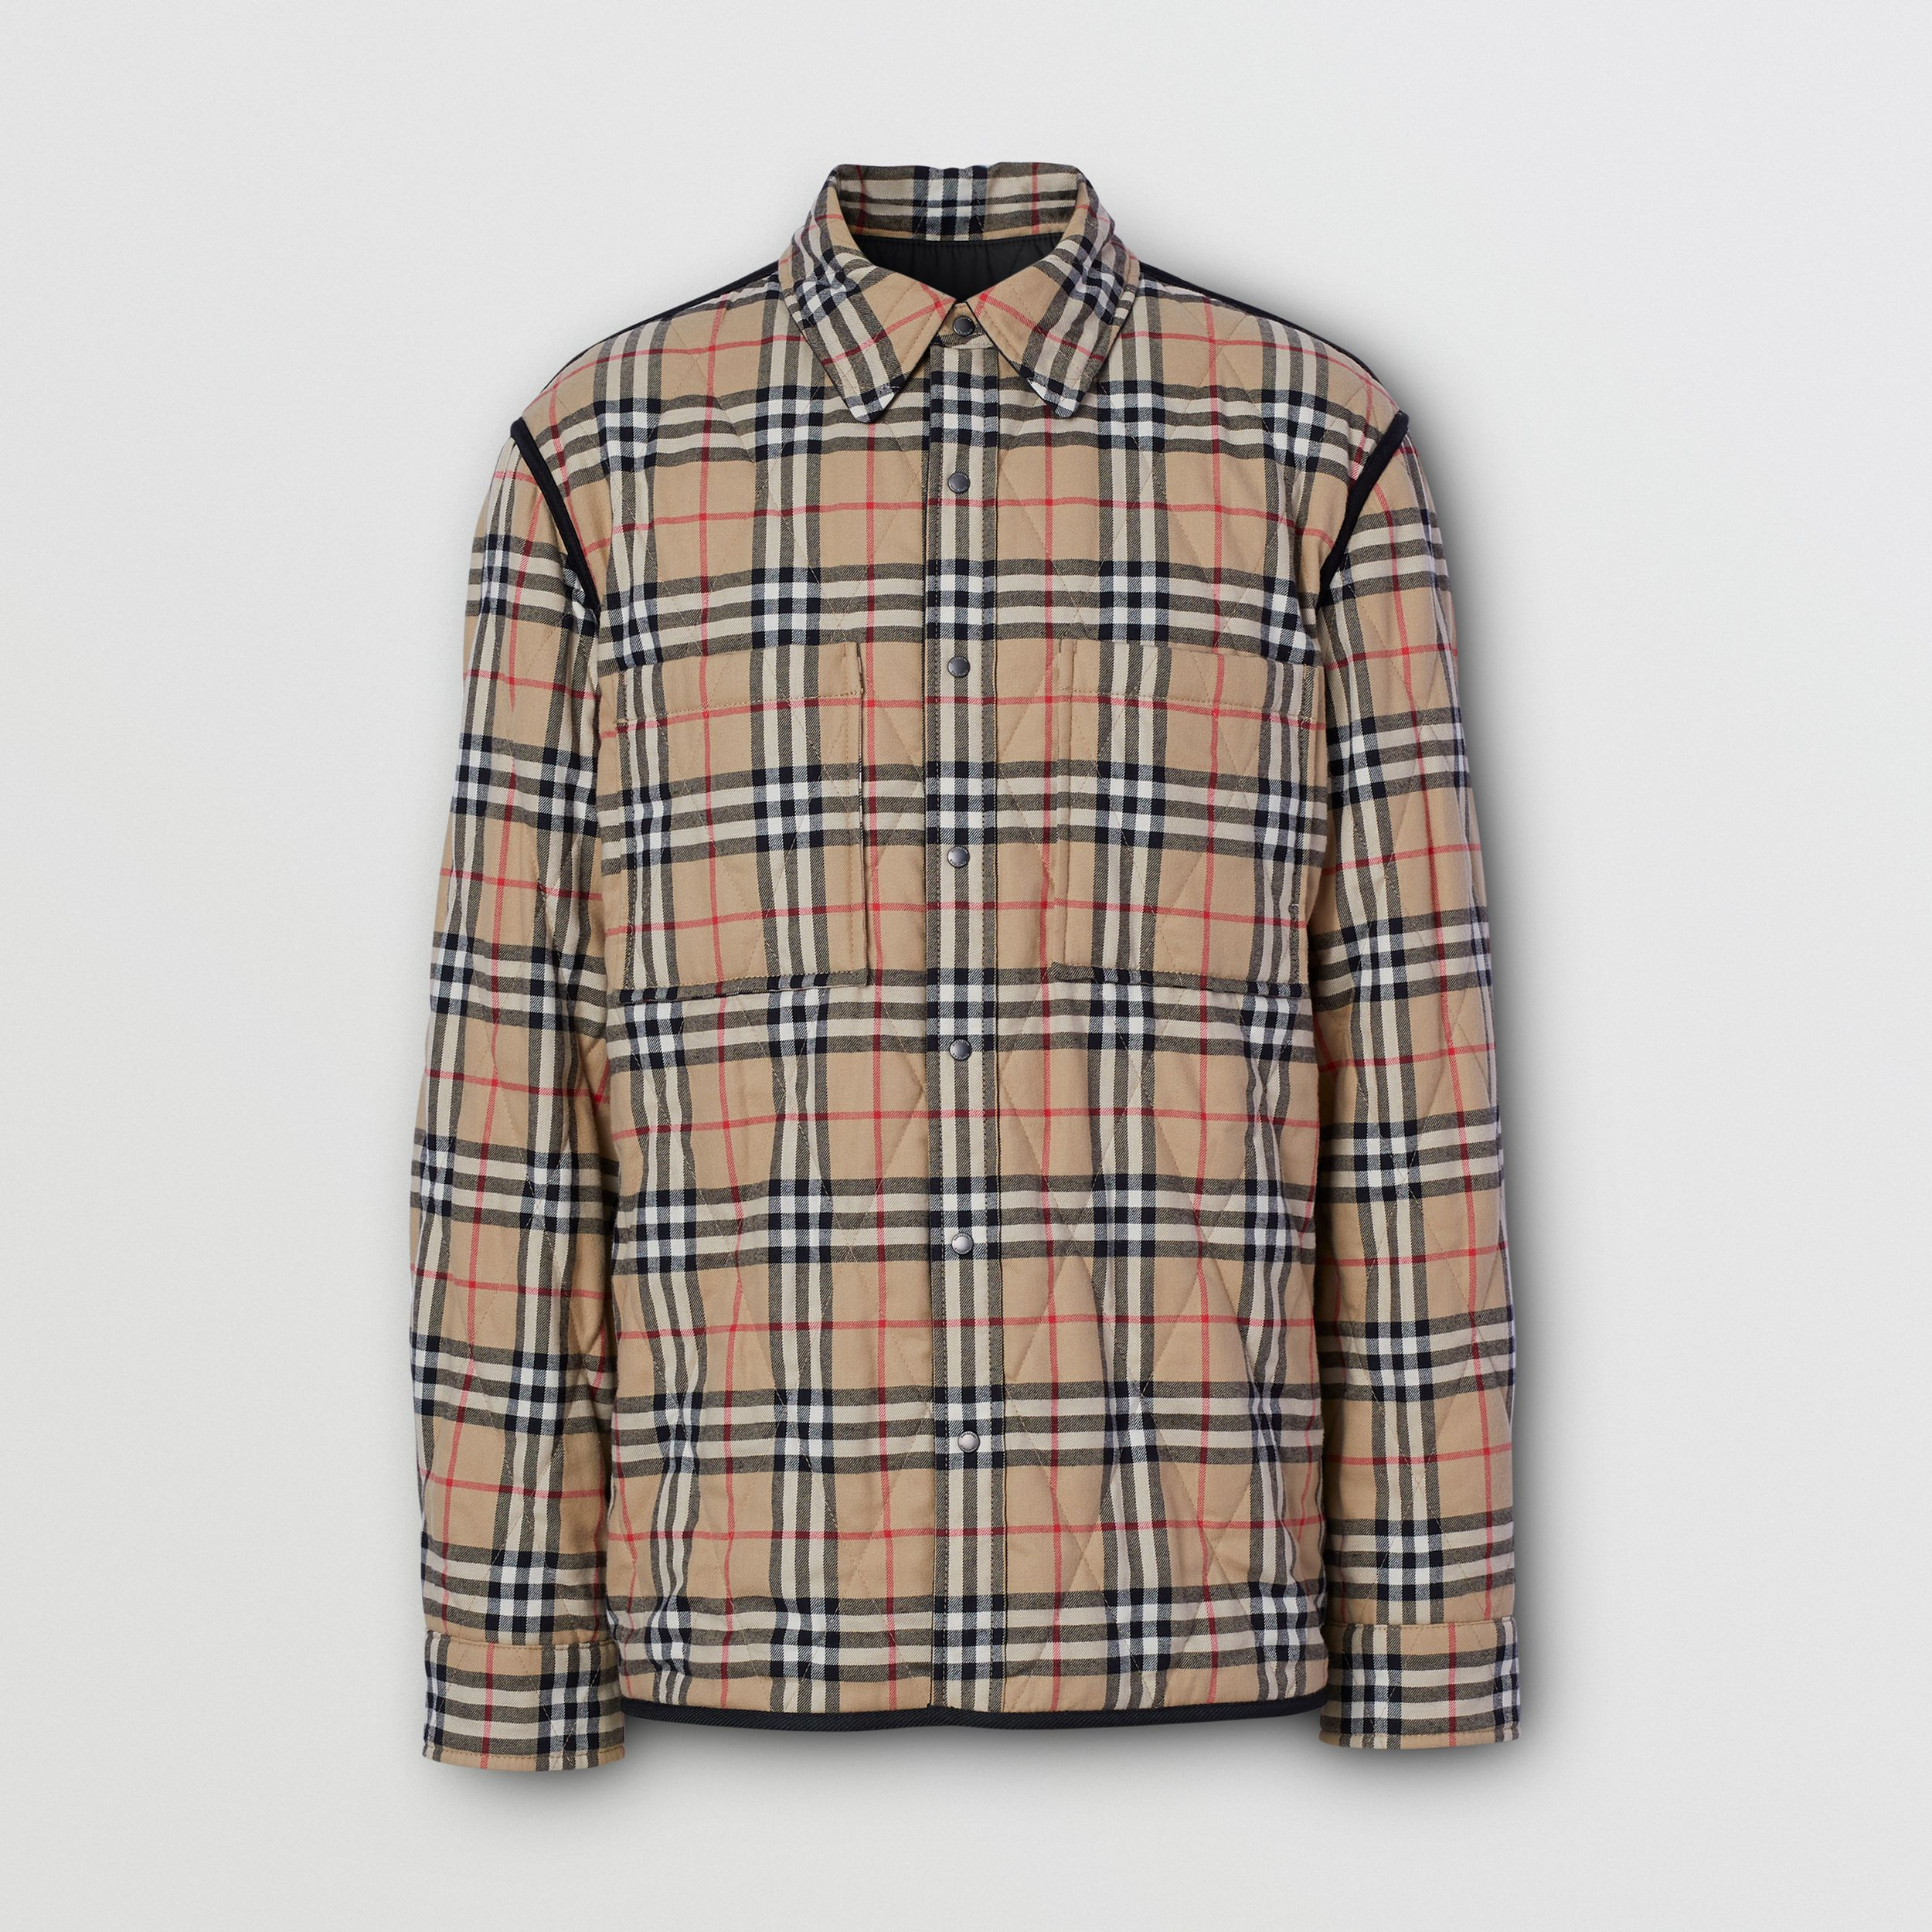 Reversible Quilted Vintage Check Cotton Overshirt - Men | Burberry - 4